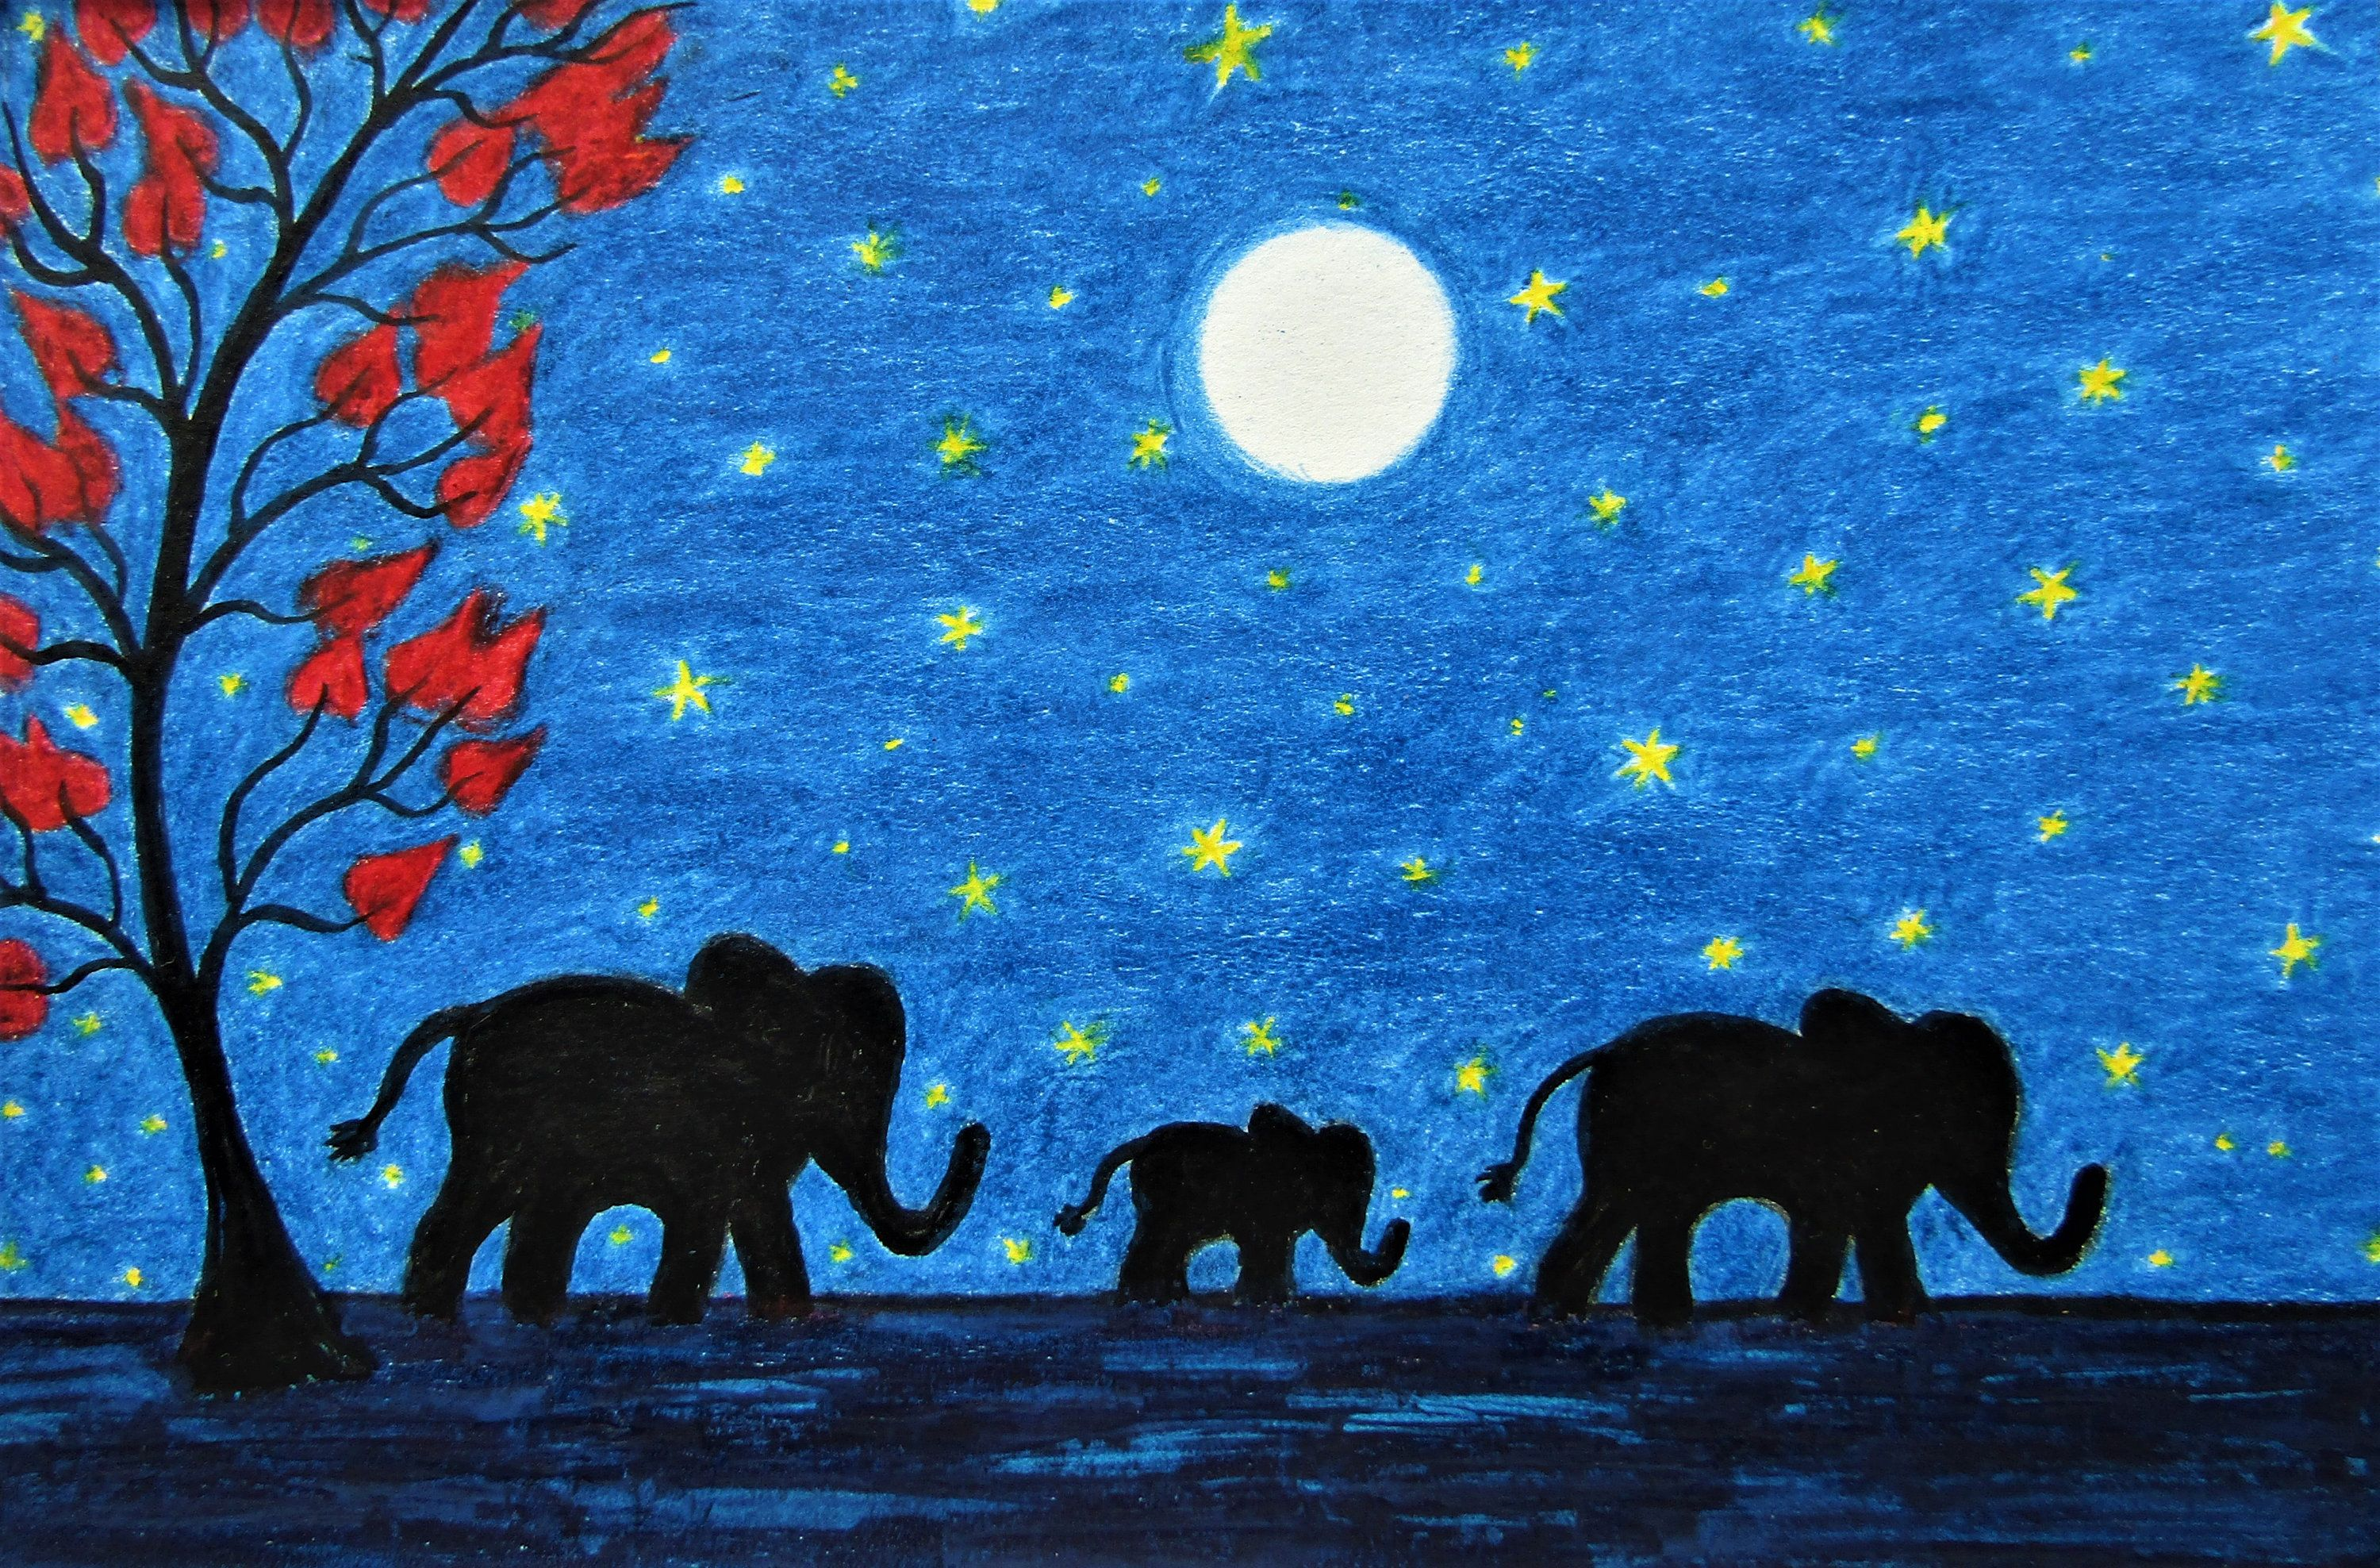 Elephant Gift, Christmas Art Print, Baby Elephant Moon Stars, Framed Animal Art, Childrens Xmas Gift, Three Elephants, Family, Animal Print #elephantitems